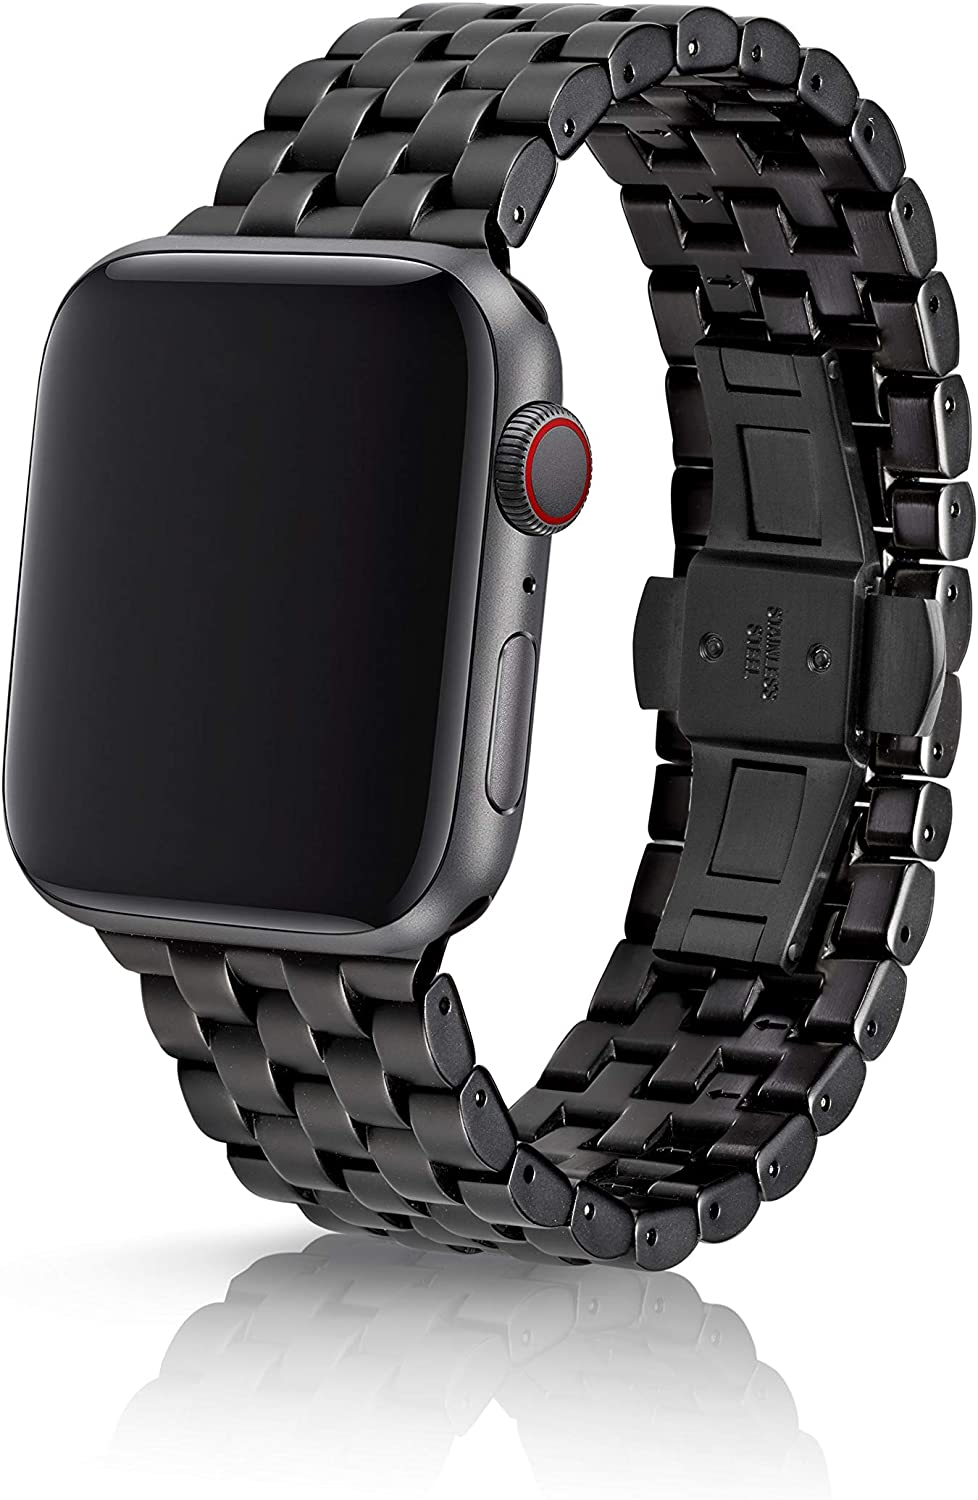 42/44mm JUUK Qrono Onyx Premium Watch Band Made for The Apple Watch, Using Aircraft Grade, Hard Anodized 6000 Series Aluminum with a Solid Stainless Steel Butterfly deployant Buckle (Matte Black)